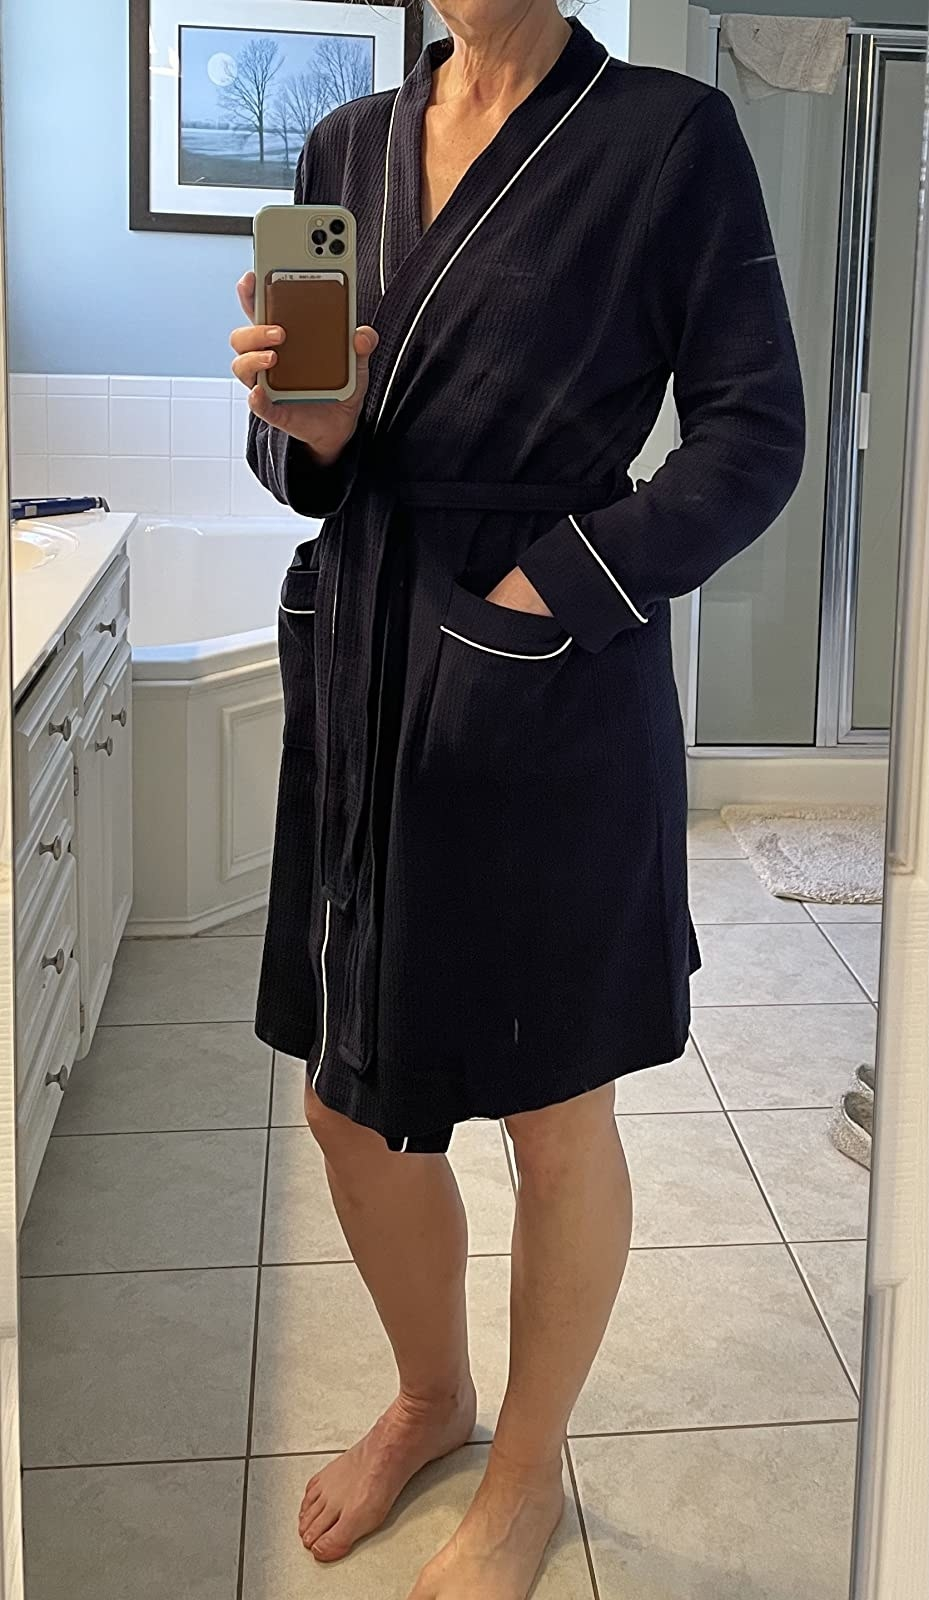 Reviewer's photo of their navy bathrobe with white piping